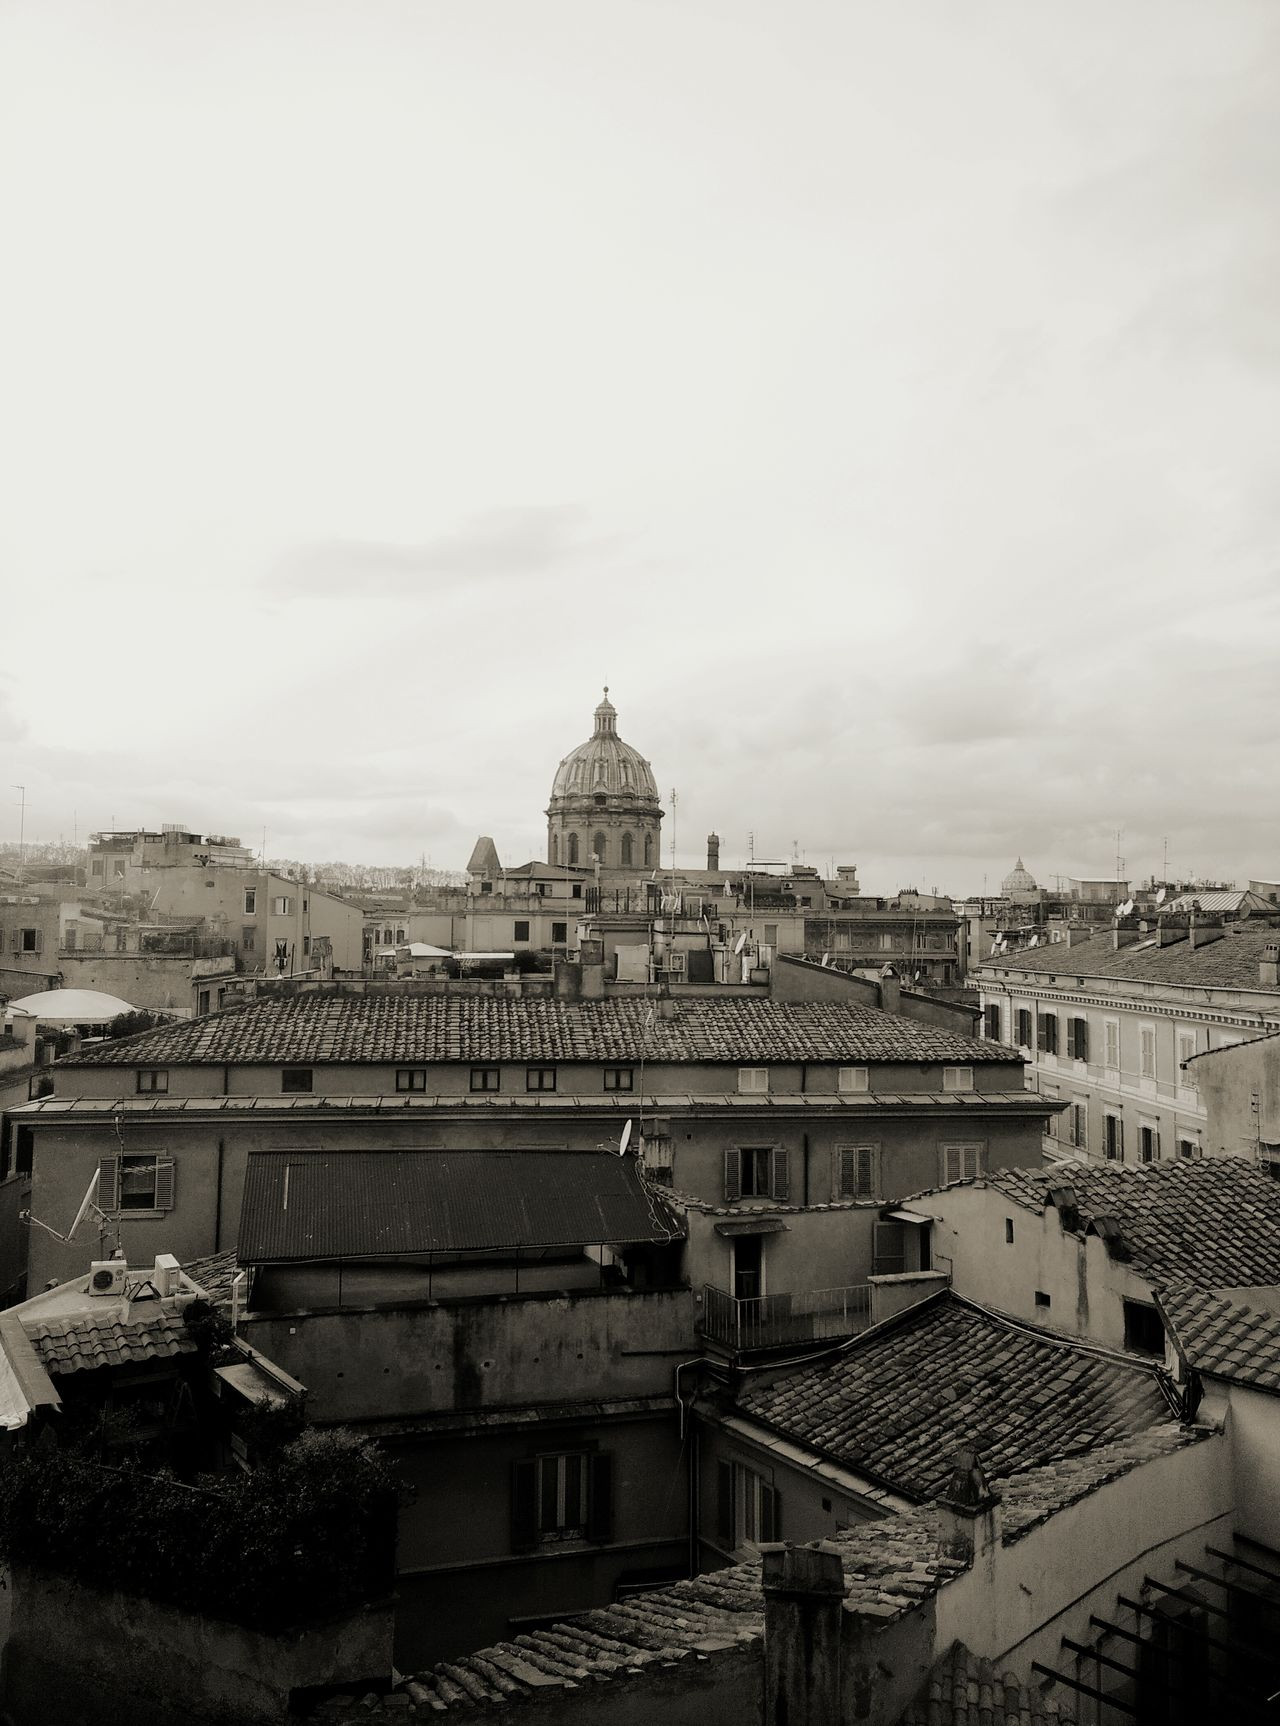 Architecture Rome Italy Enjoying The View Panorama Rome High Views Historical Building Historical Sights